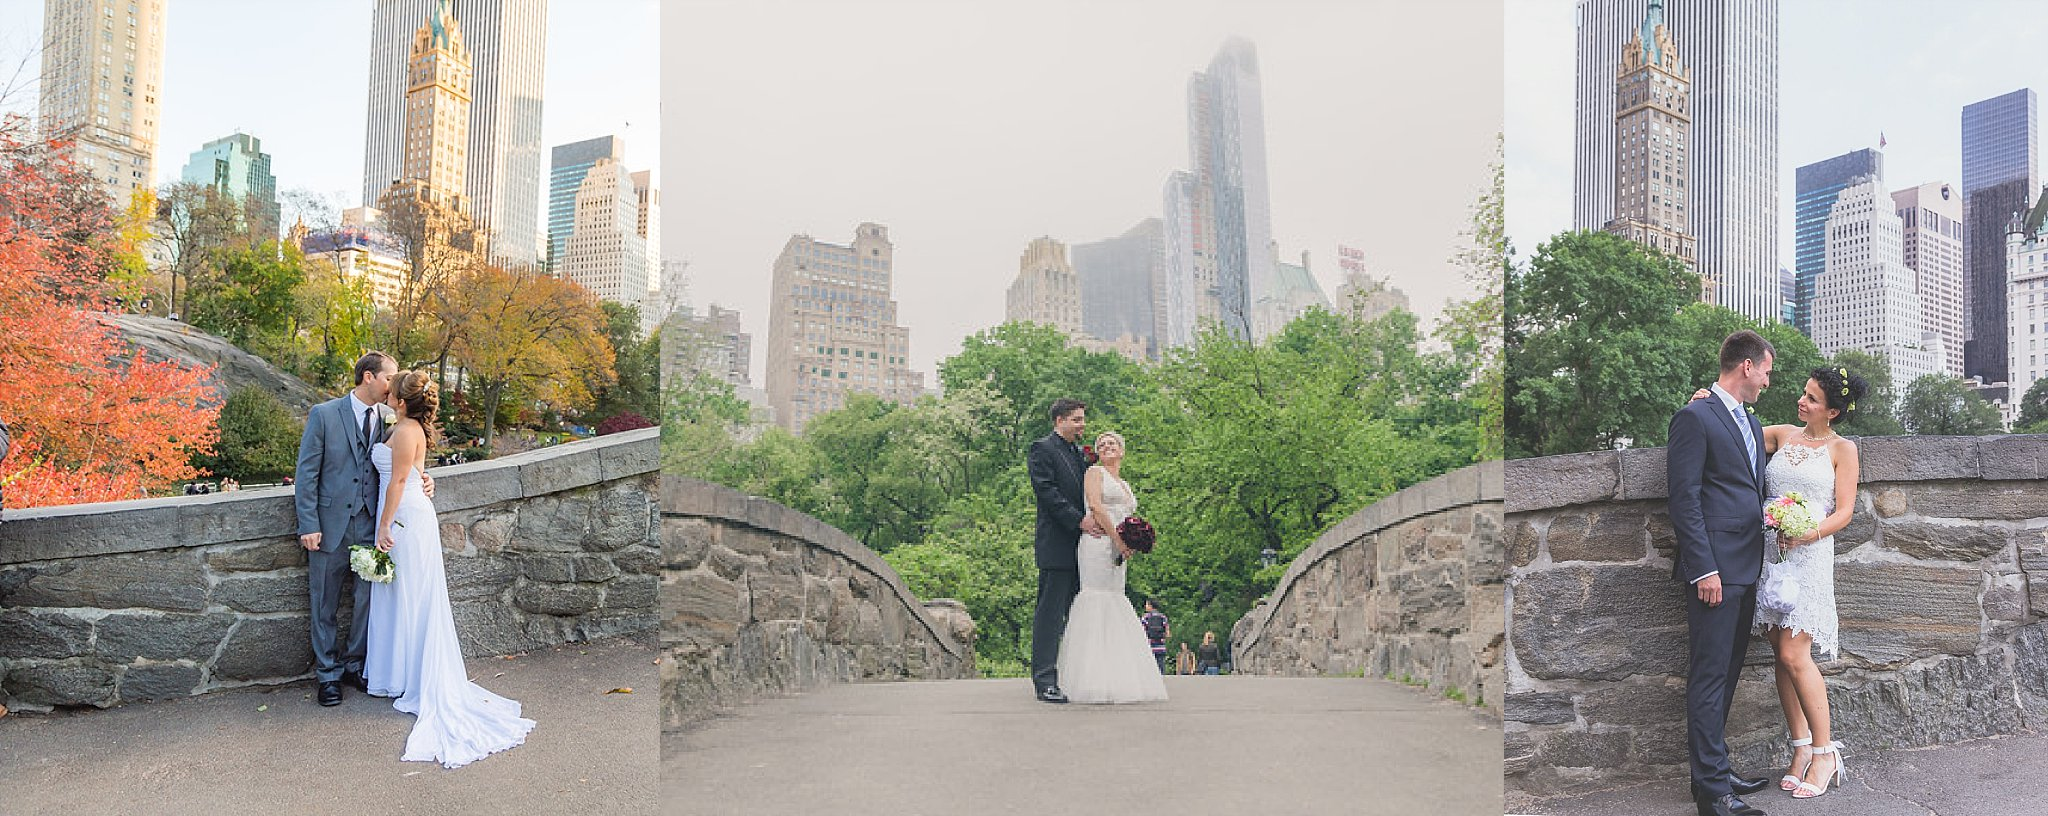 Gapstow Bridge Central Park Wedding Ceremony Location